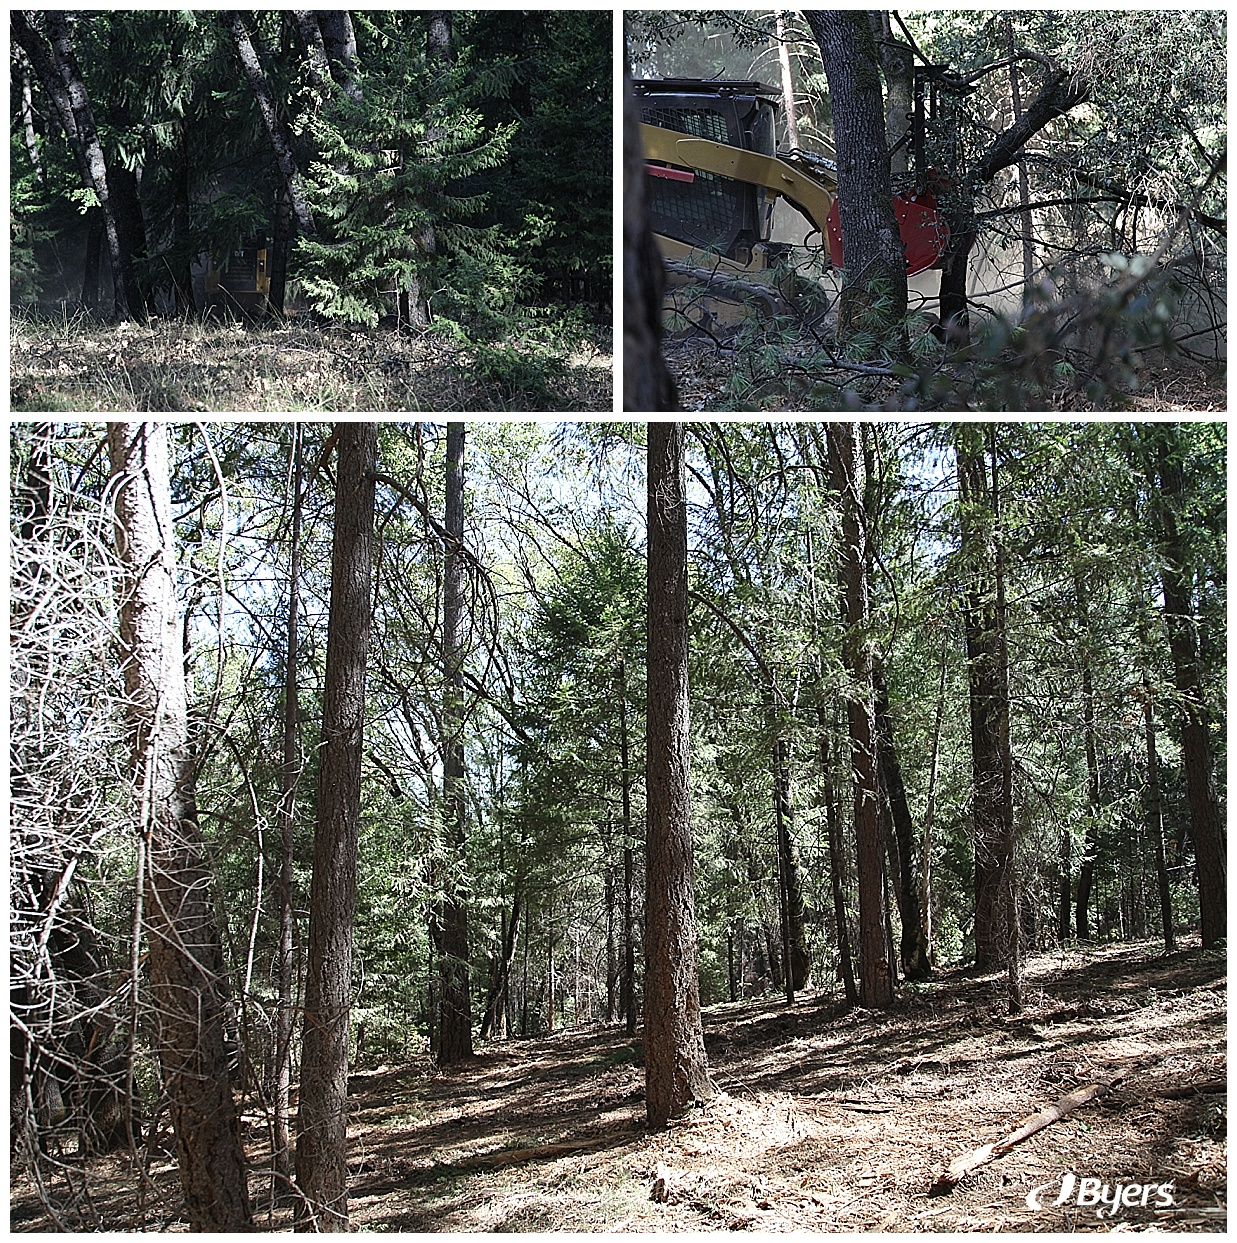 Land Clearing & Wildfire Prevention | Byers | Cameron